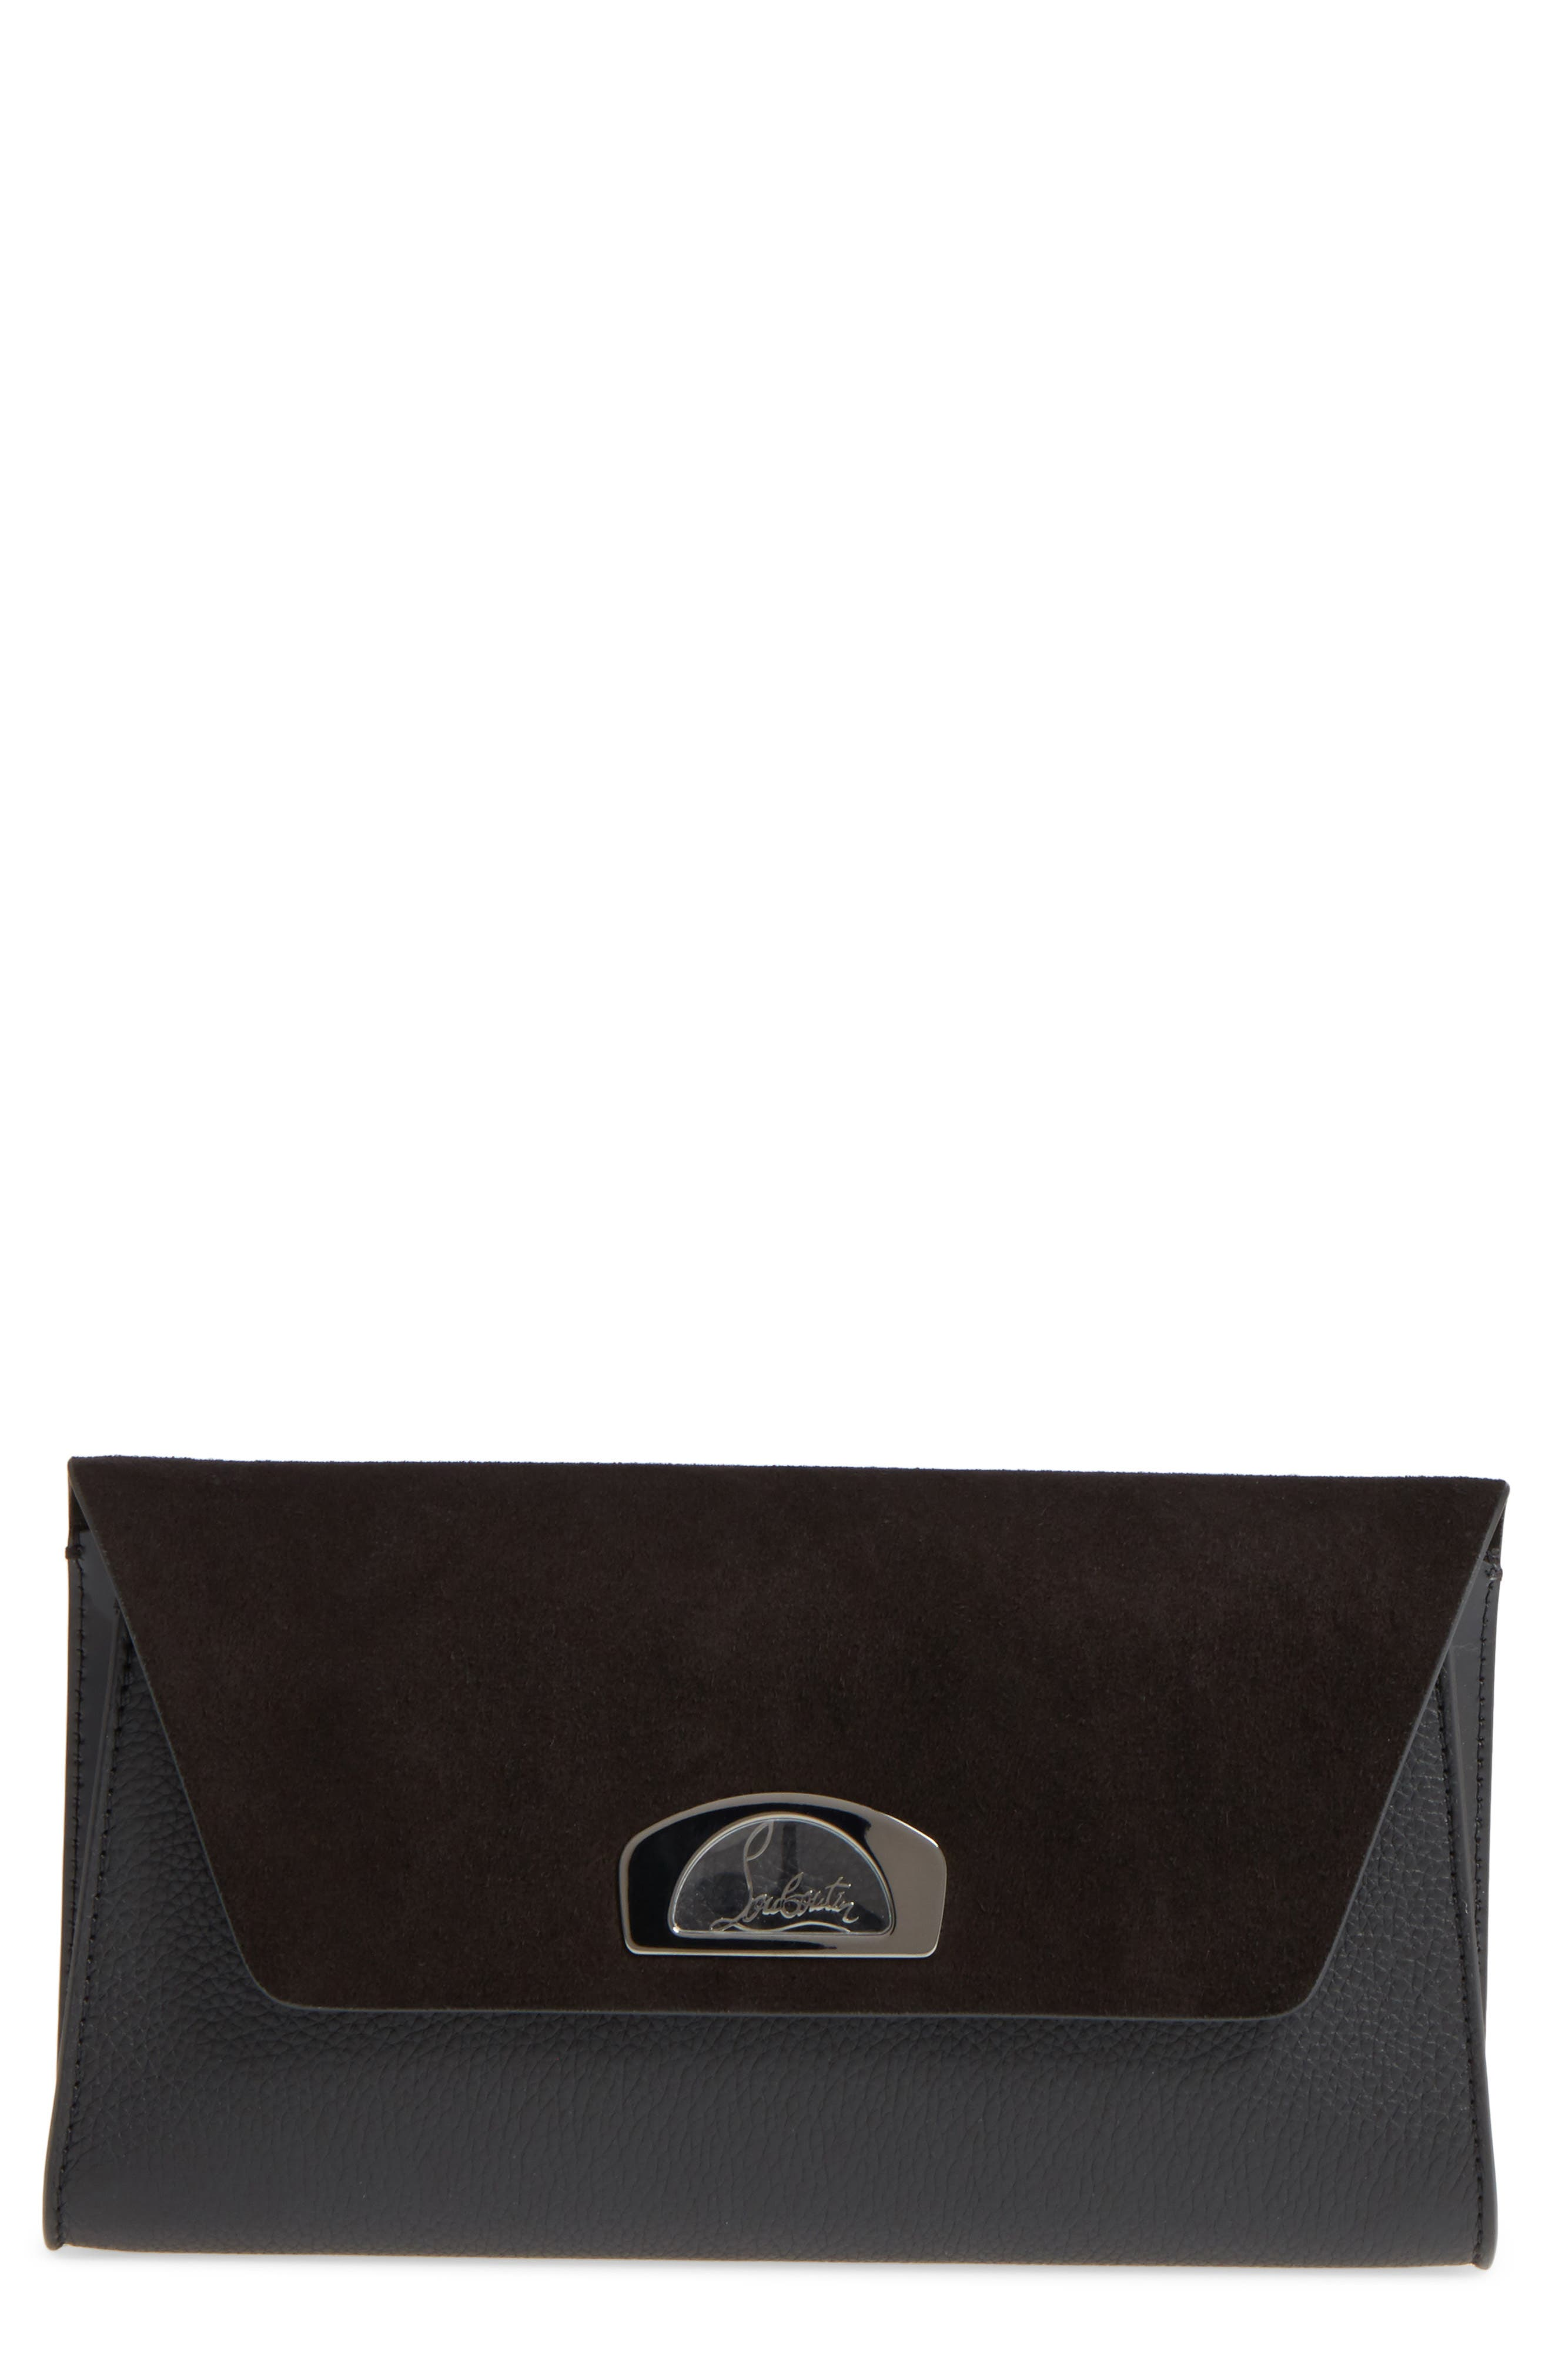 Christian Louboutin Vero Dodat Velour Suede & Leather Clutch